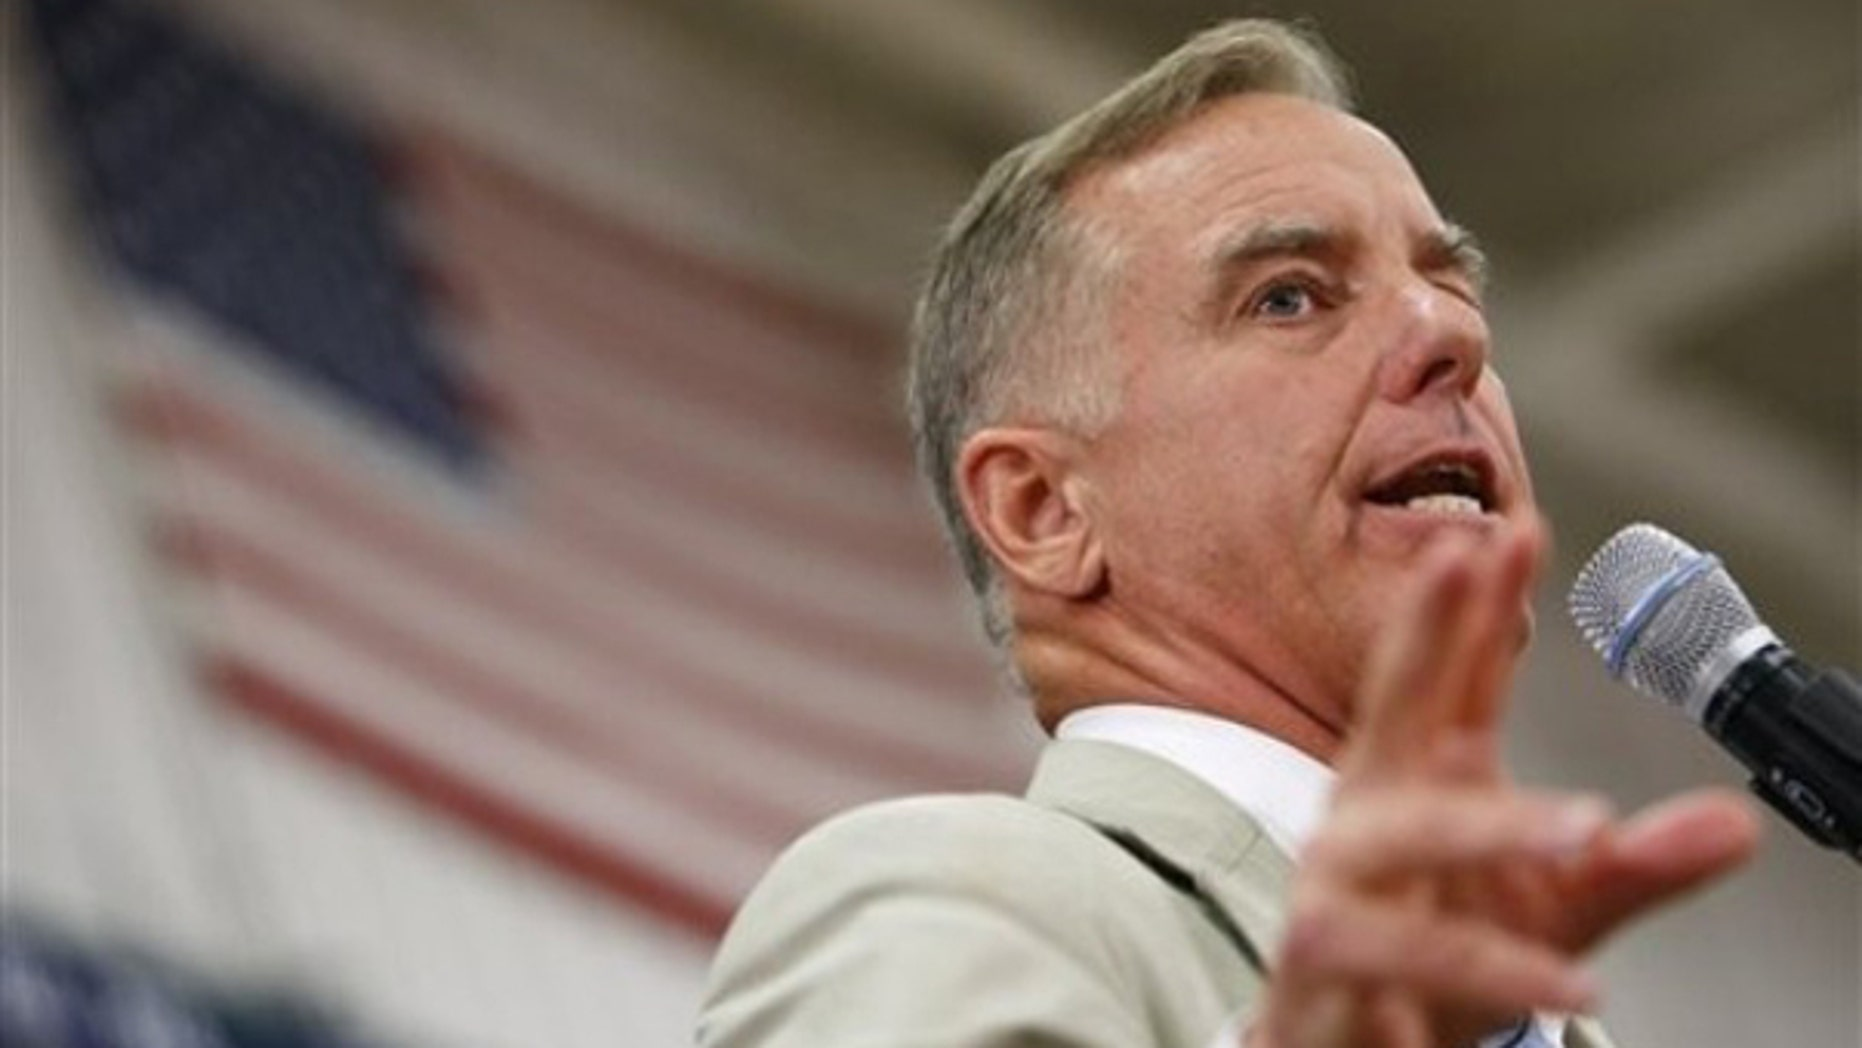 Howard Dean thinks Donald Trump could be a cocaine user.